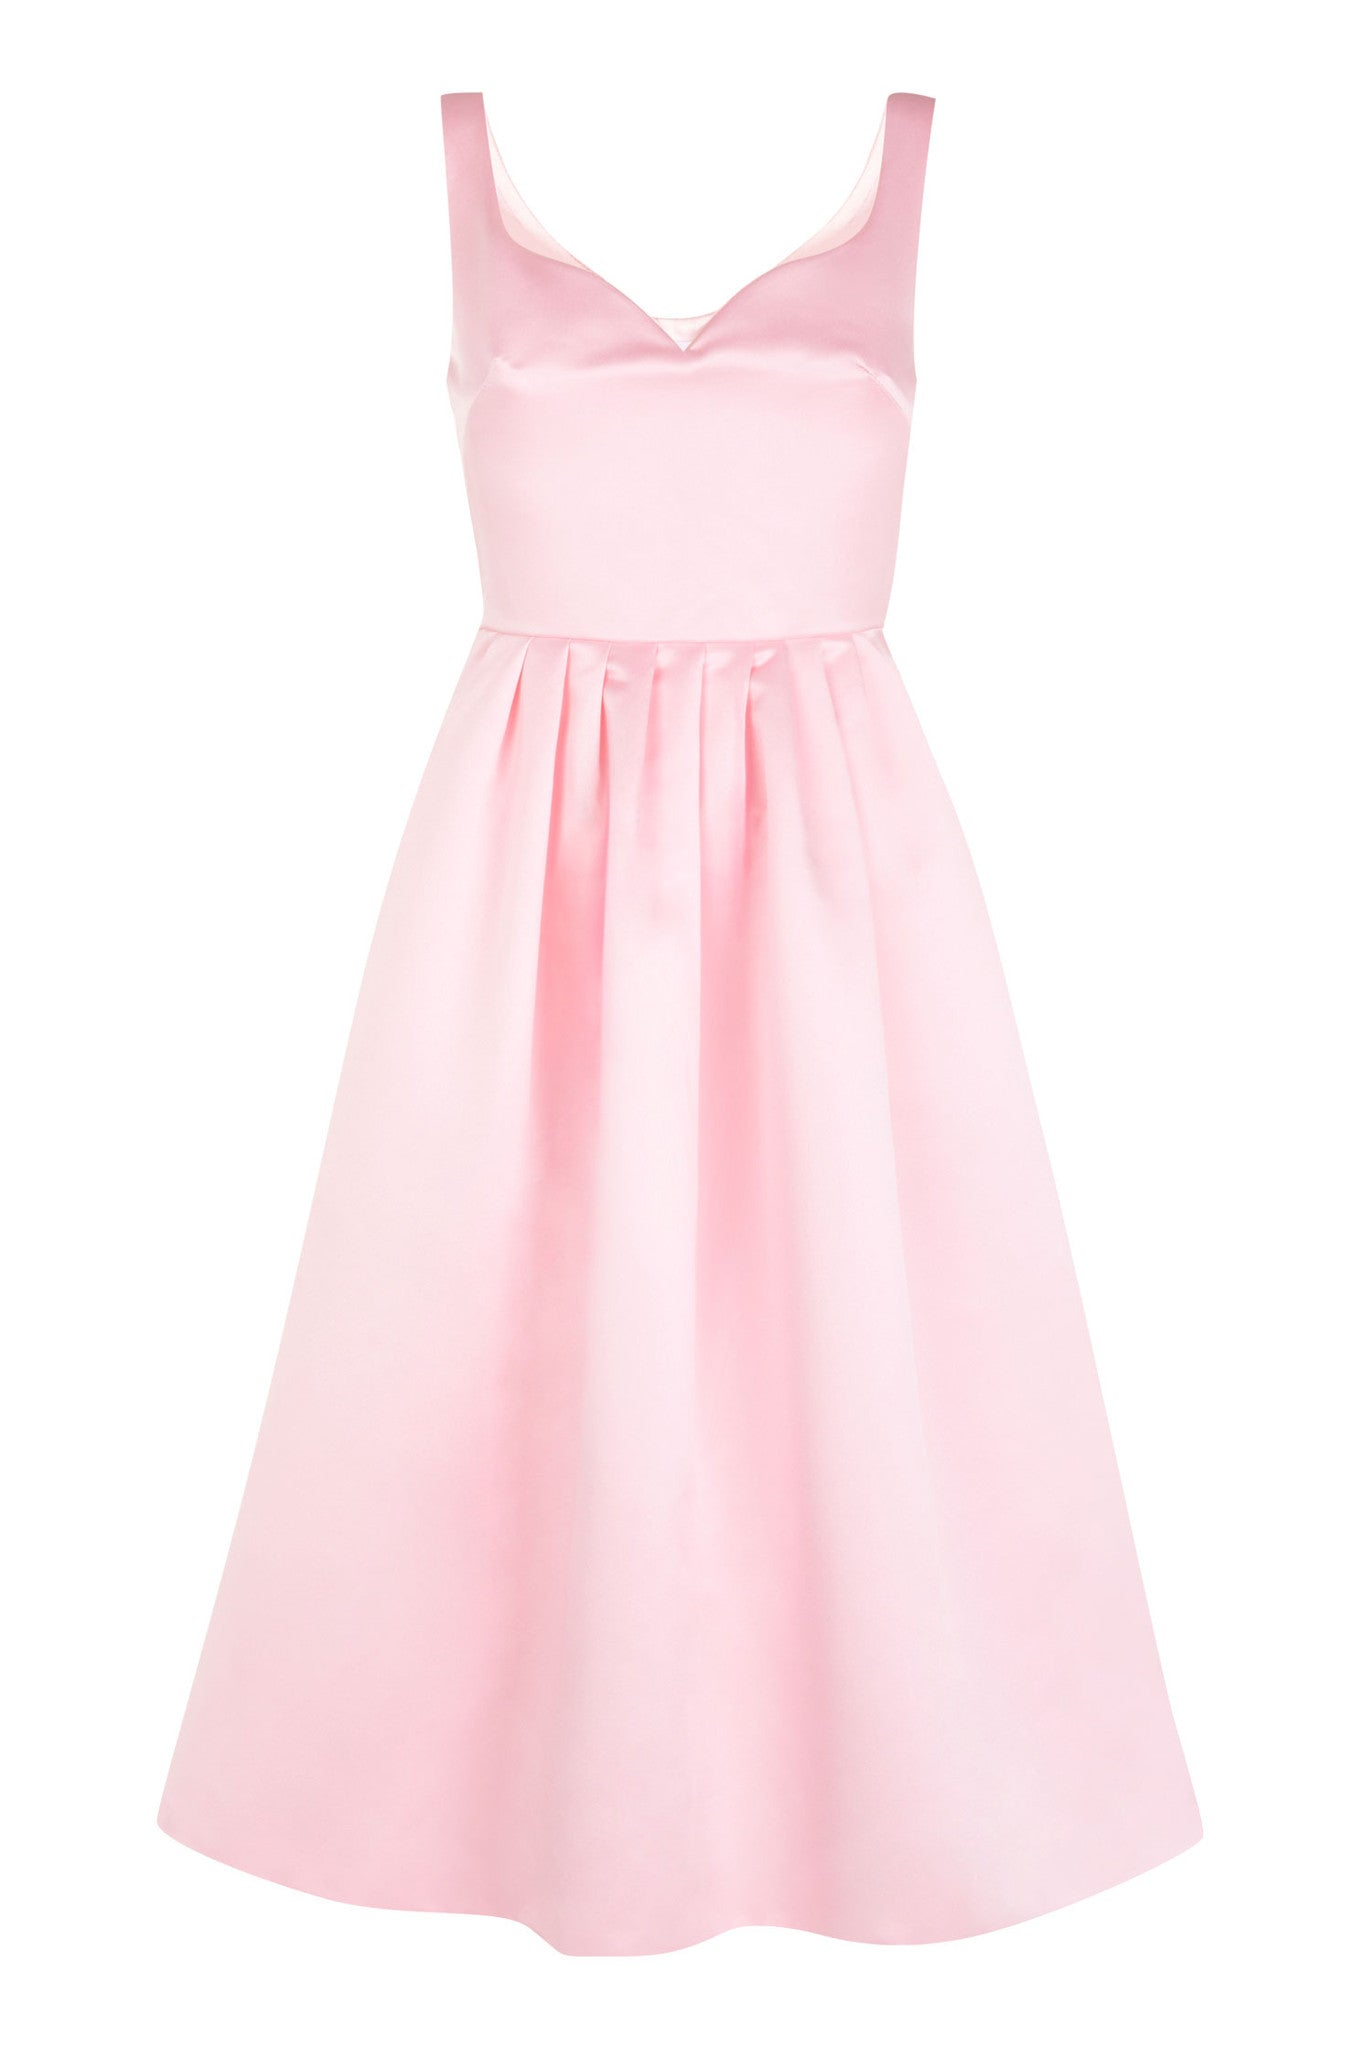 The Sweetheart Prom Dress - Powder Pink